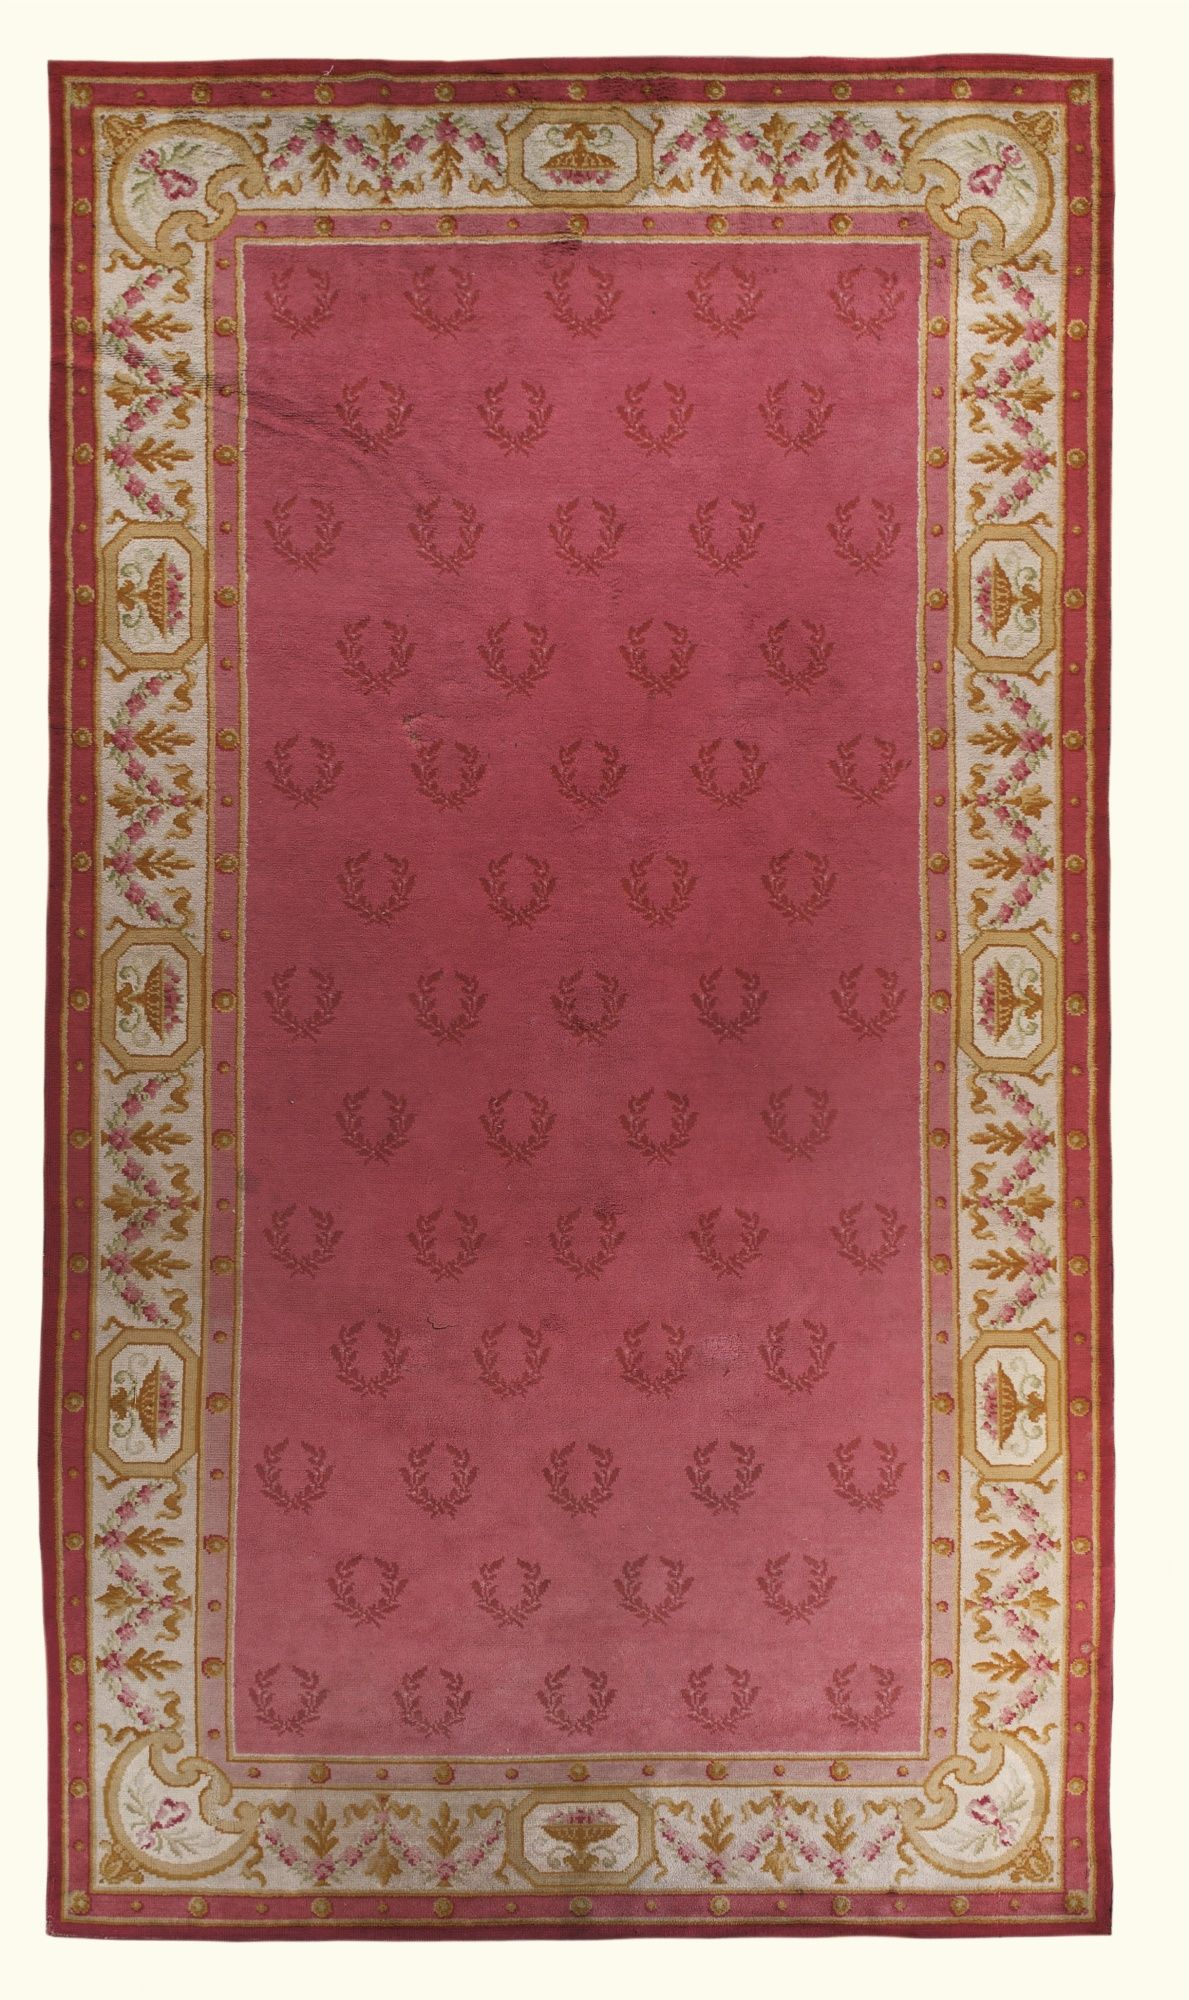 A Neoclical Style Carpet With Salmon Coloured Main Field Overall Repeat Pattern Of Crescent Shaped Motif Crossed Laurel Sprigs An Ivory